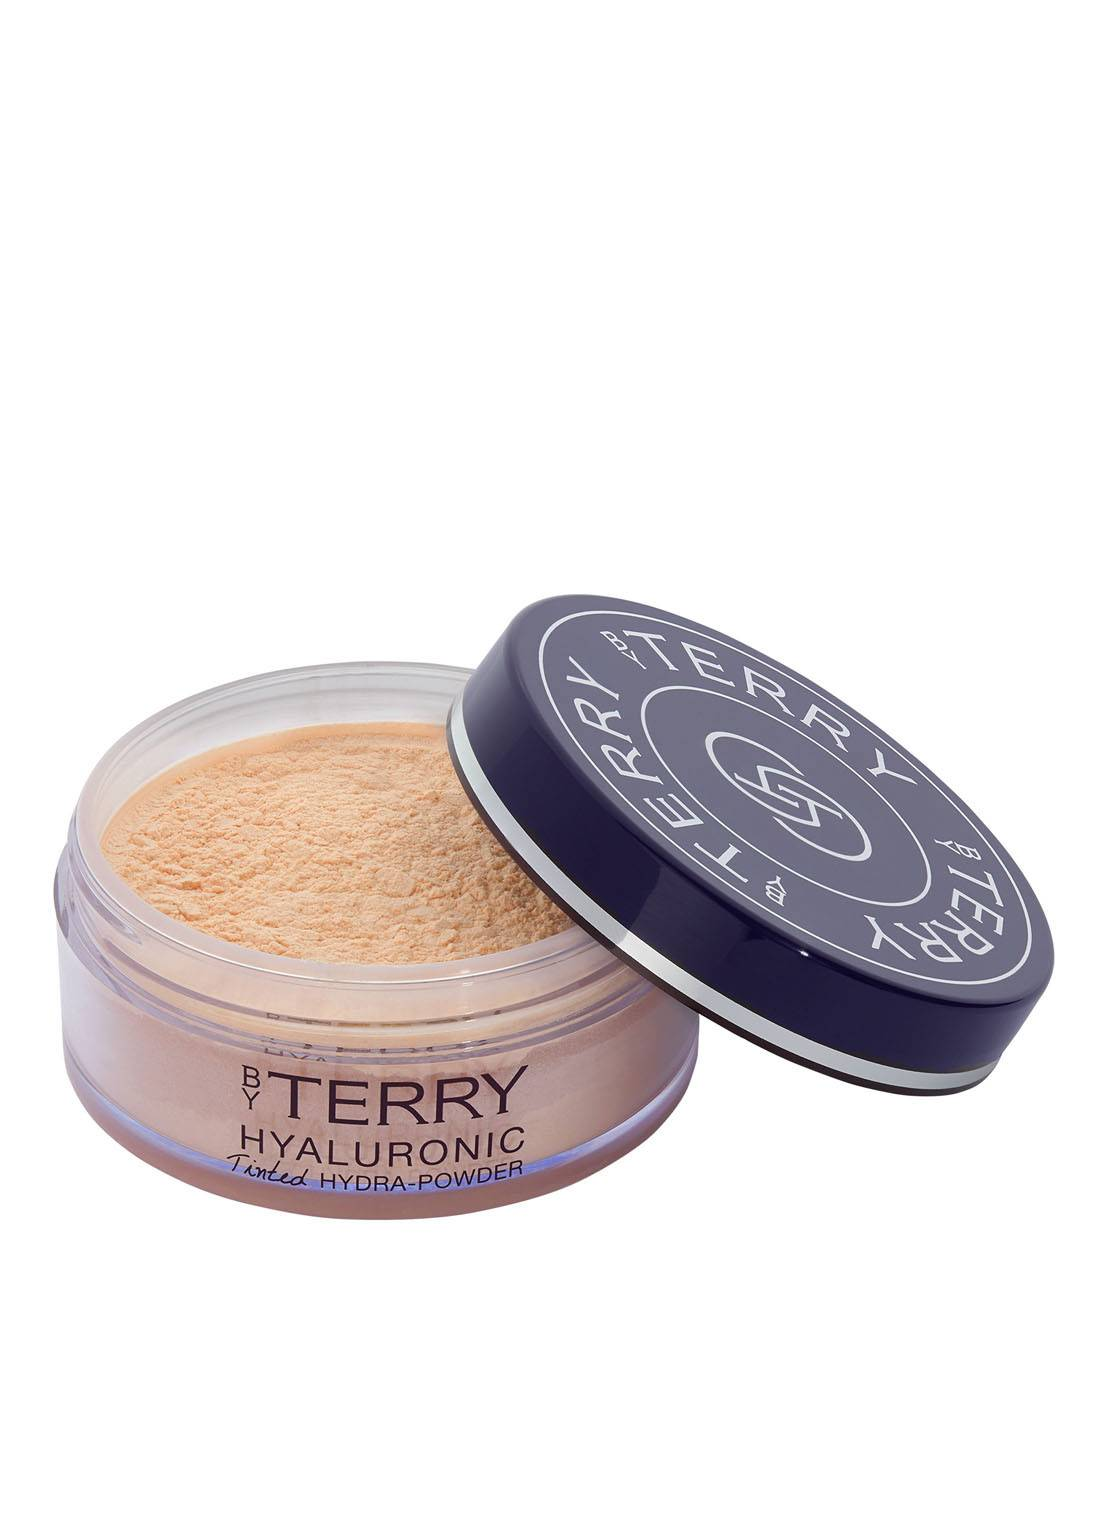 By Terry Hyaluronic Tinted Hydra Powder - poudre libre - N100 Fair